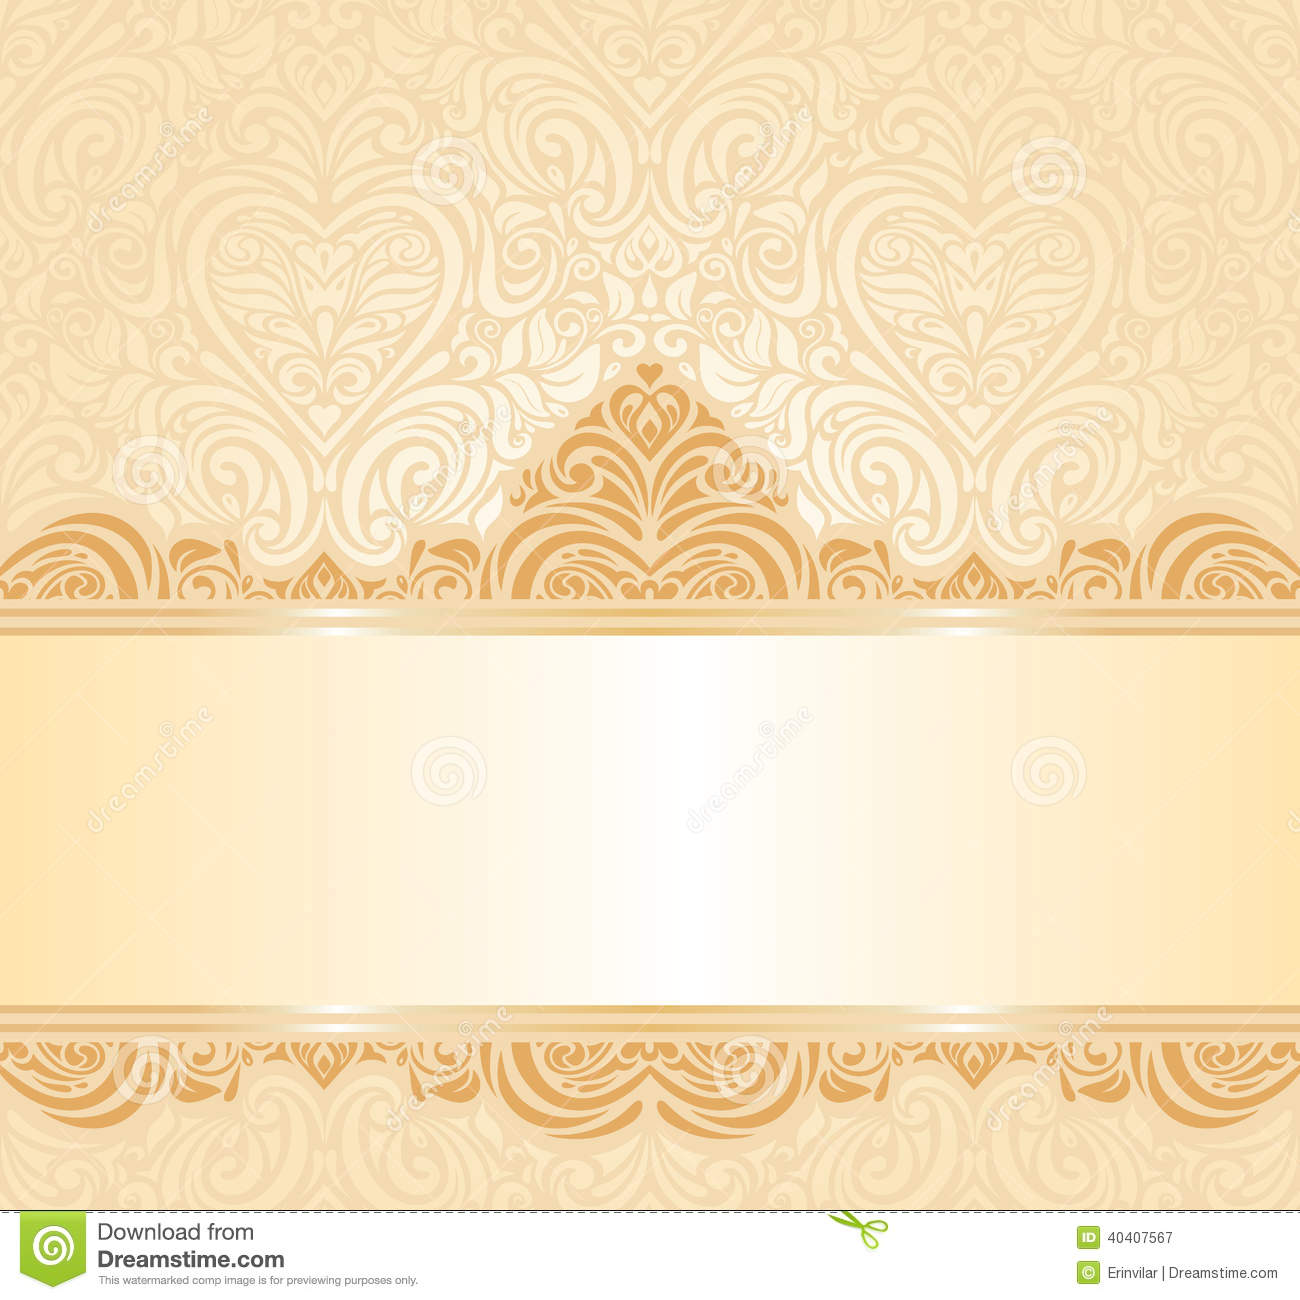 Gentle Peach Wedding Invitation Floral Background Stock Vector - Image ...